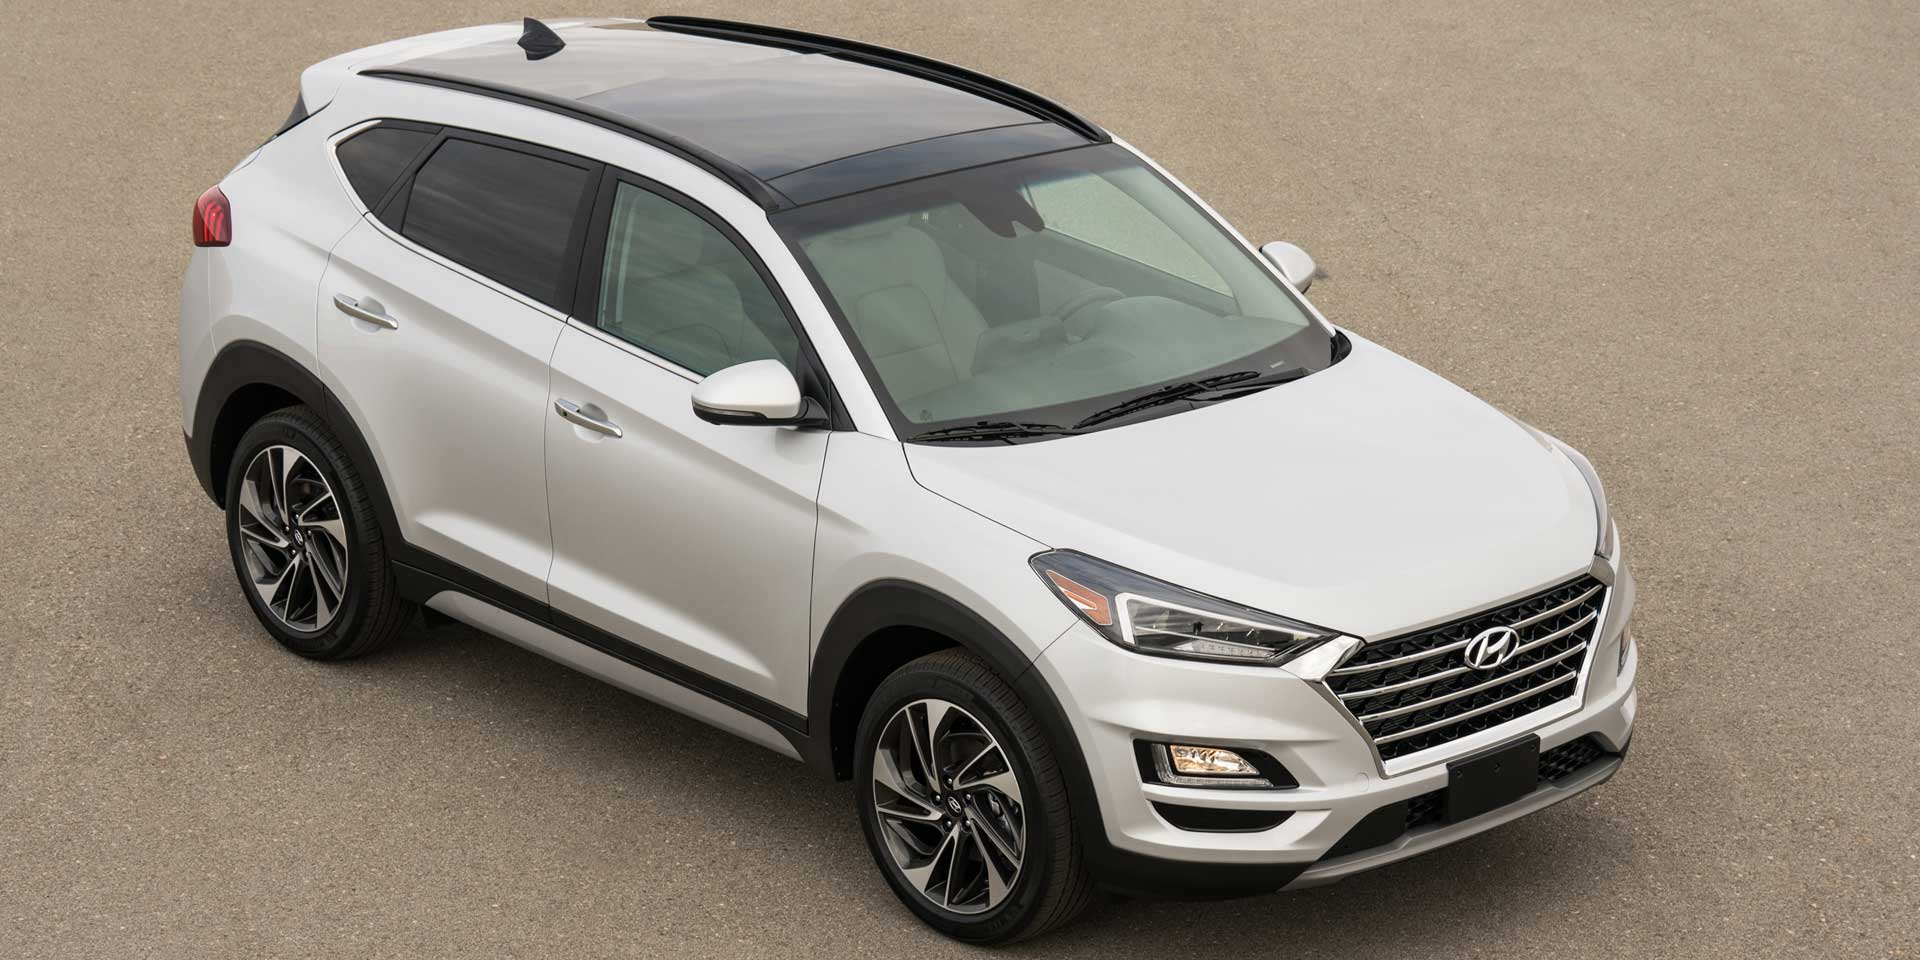 2019 Hyundai Tucson Vehicles On Display Chicago Auto Show